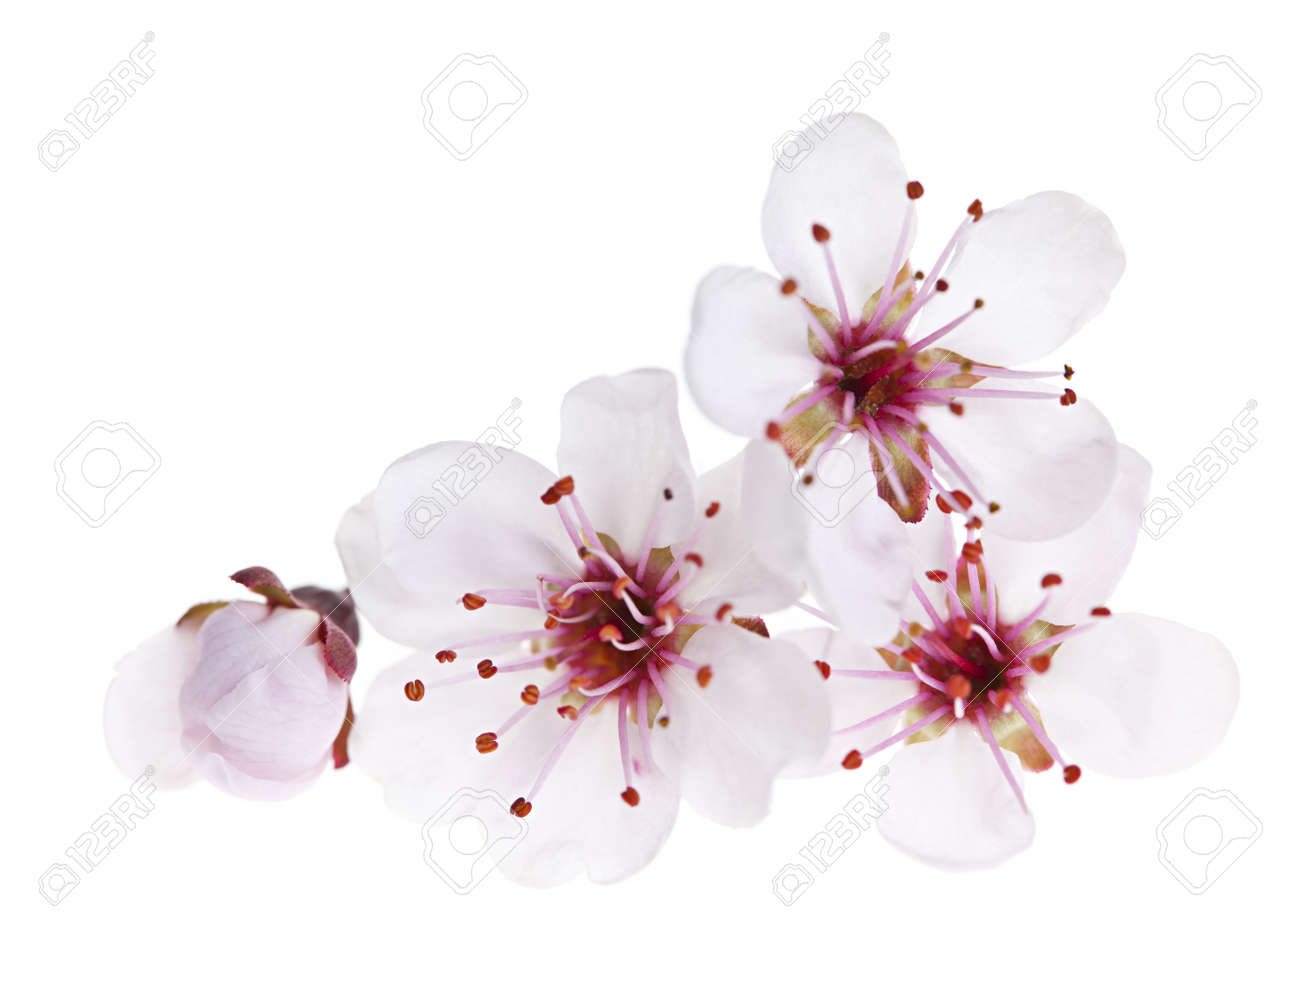 Cherry blossom flowers close up isolated on white background stock cherry blossom flowers close up isolated on white background stock photo 13558493 mightylinksfo